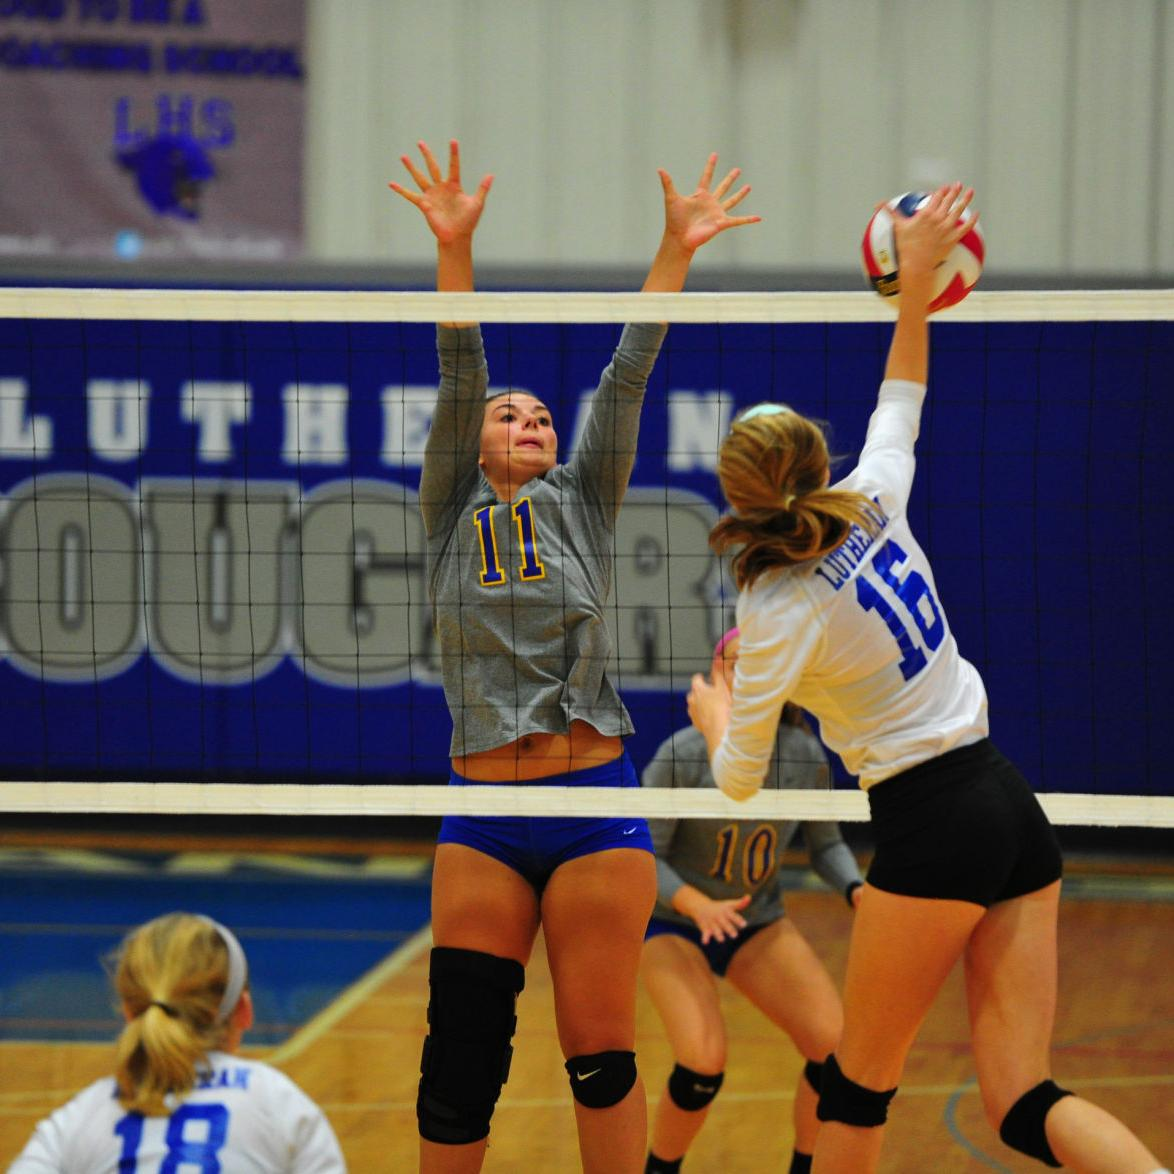 District Volleyball — Borgia vs. Lutheran St. Charles